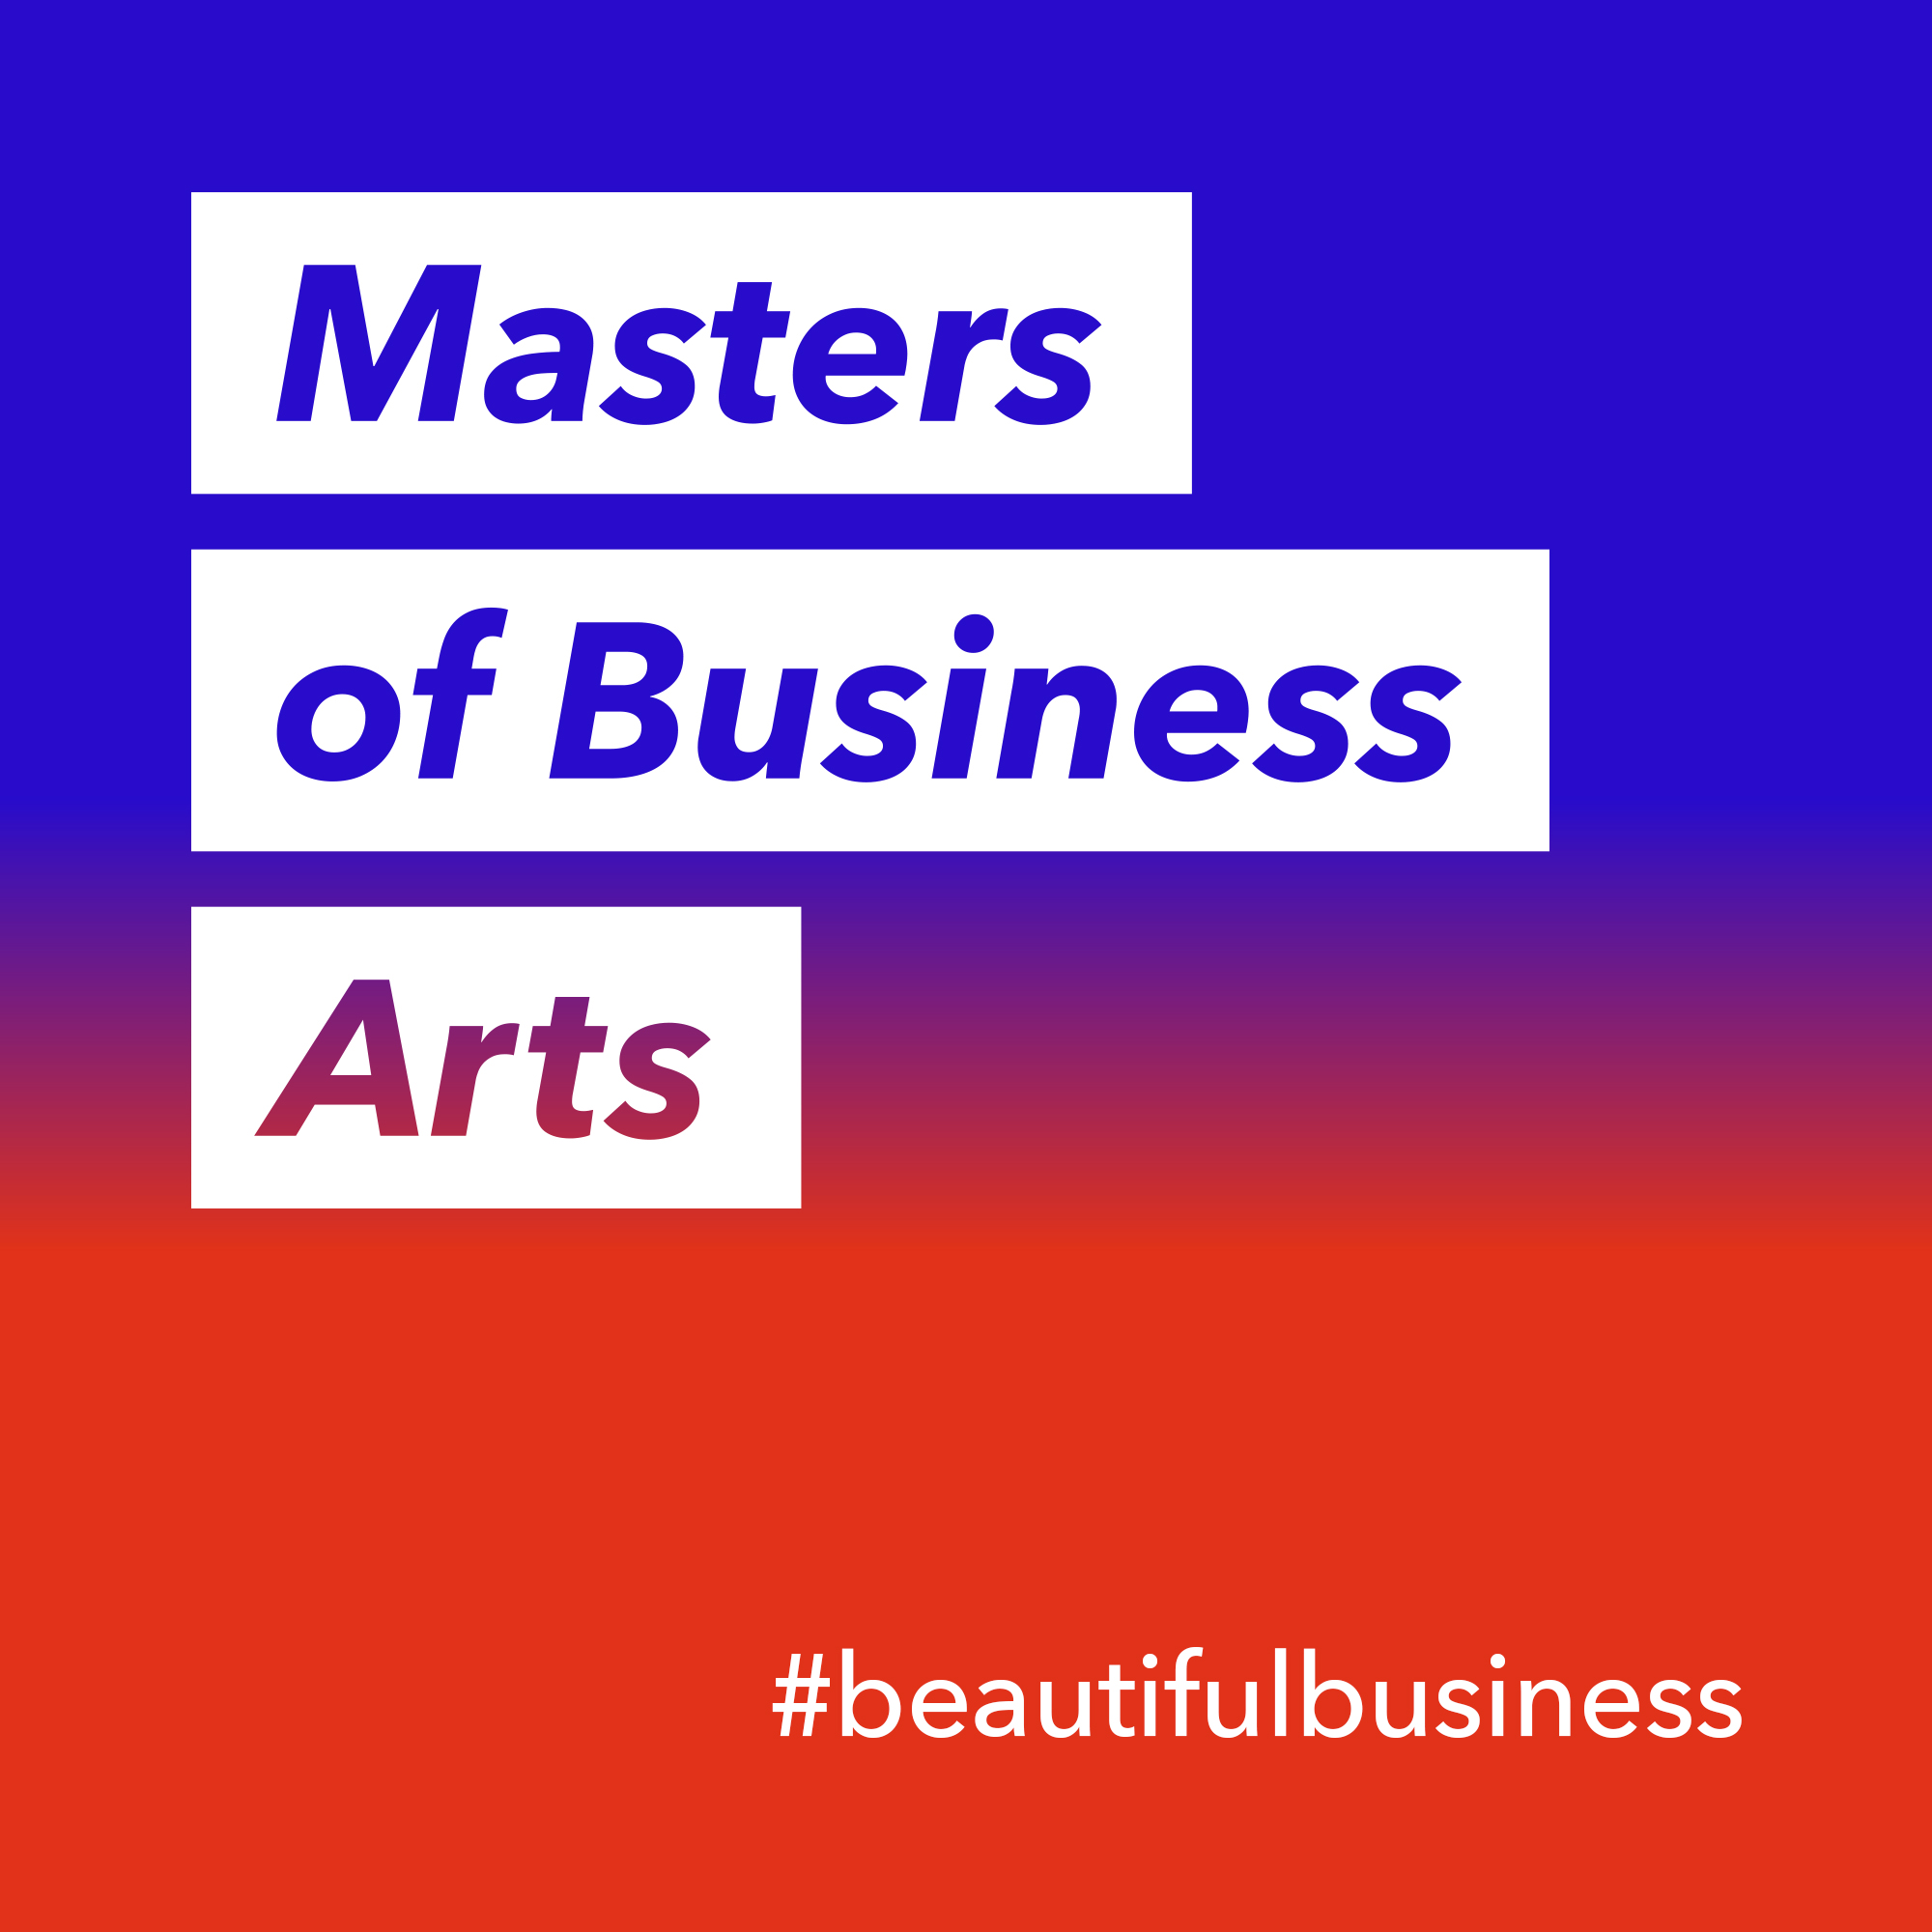 Our podcast features conversations with leaders from business, tech, humanities, and the arts, who explore the possibilities of making business more beautiful. You can listen to it on iTunes, Spotify, Google Podcast, Pocket Cast, and Anchor. -